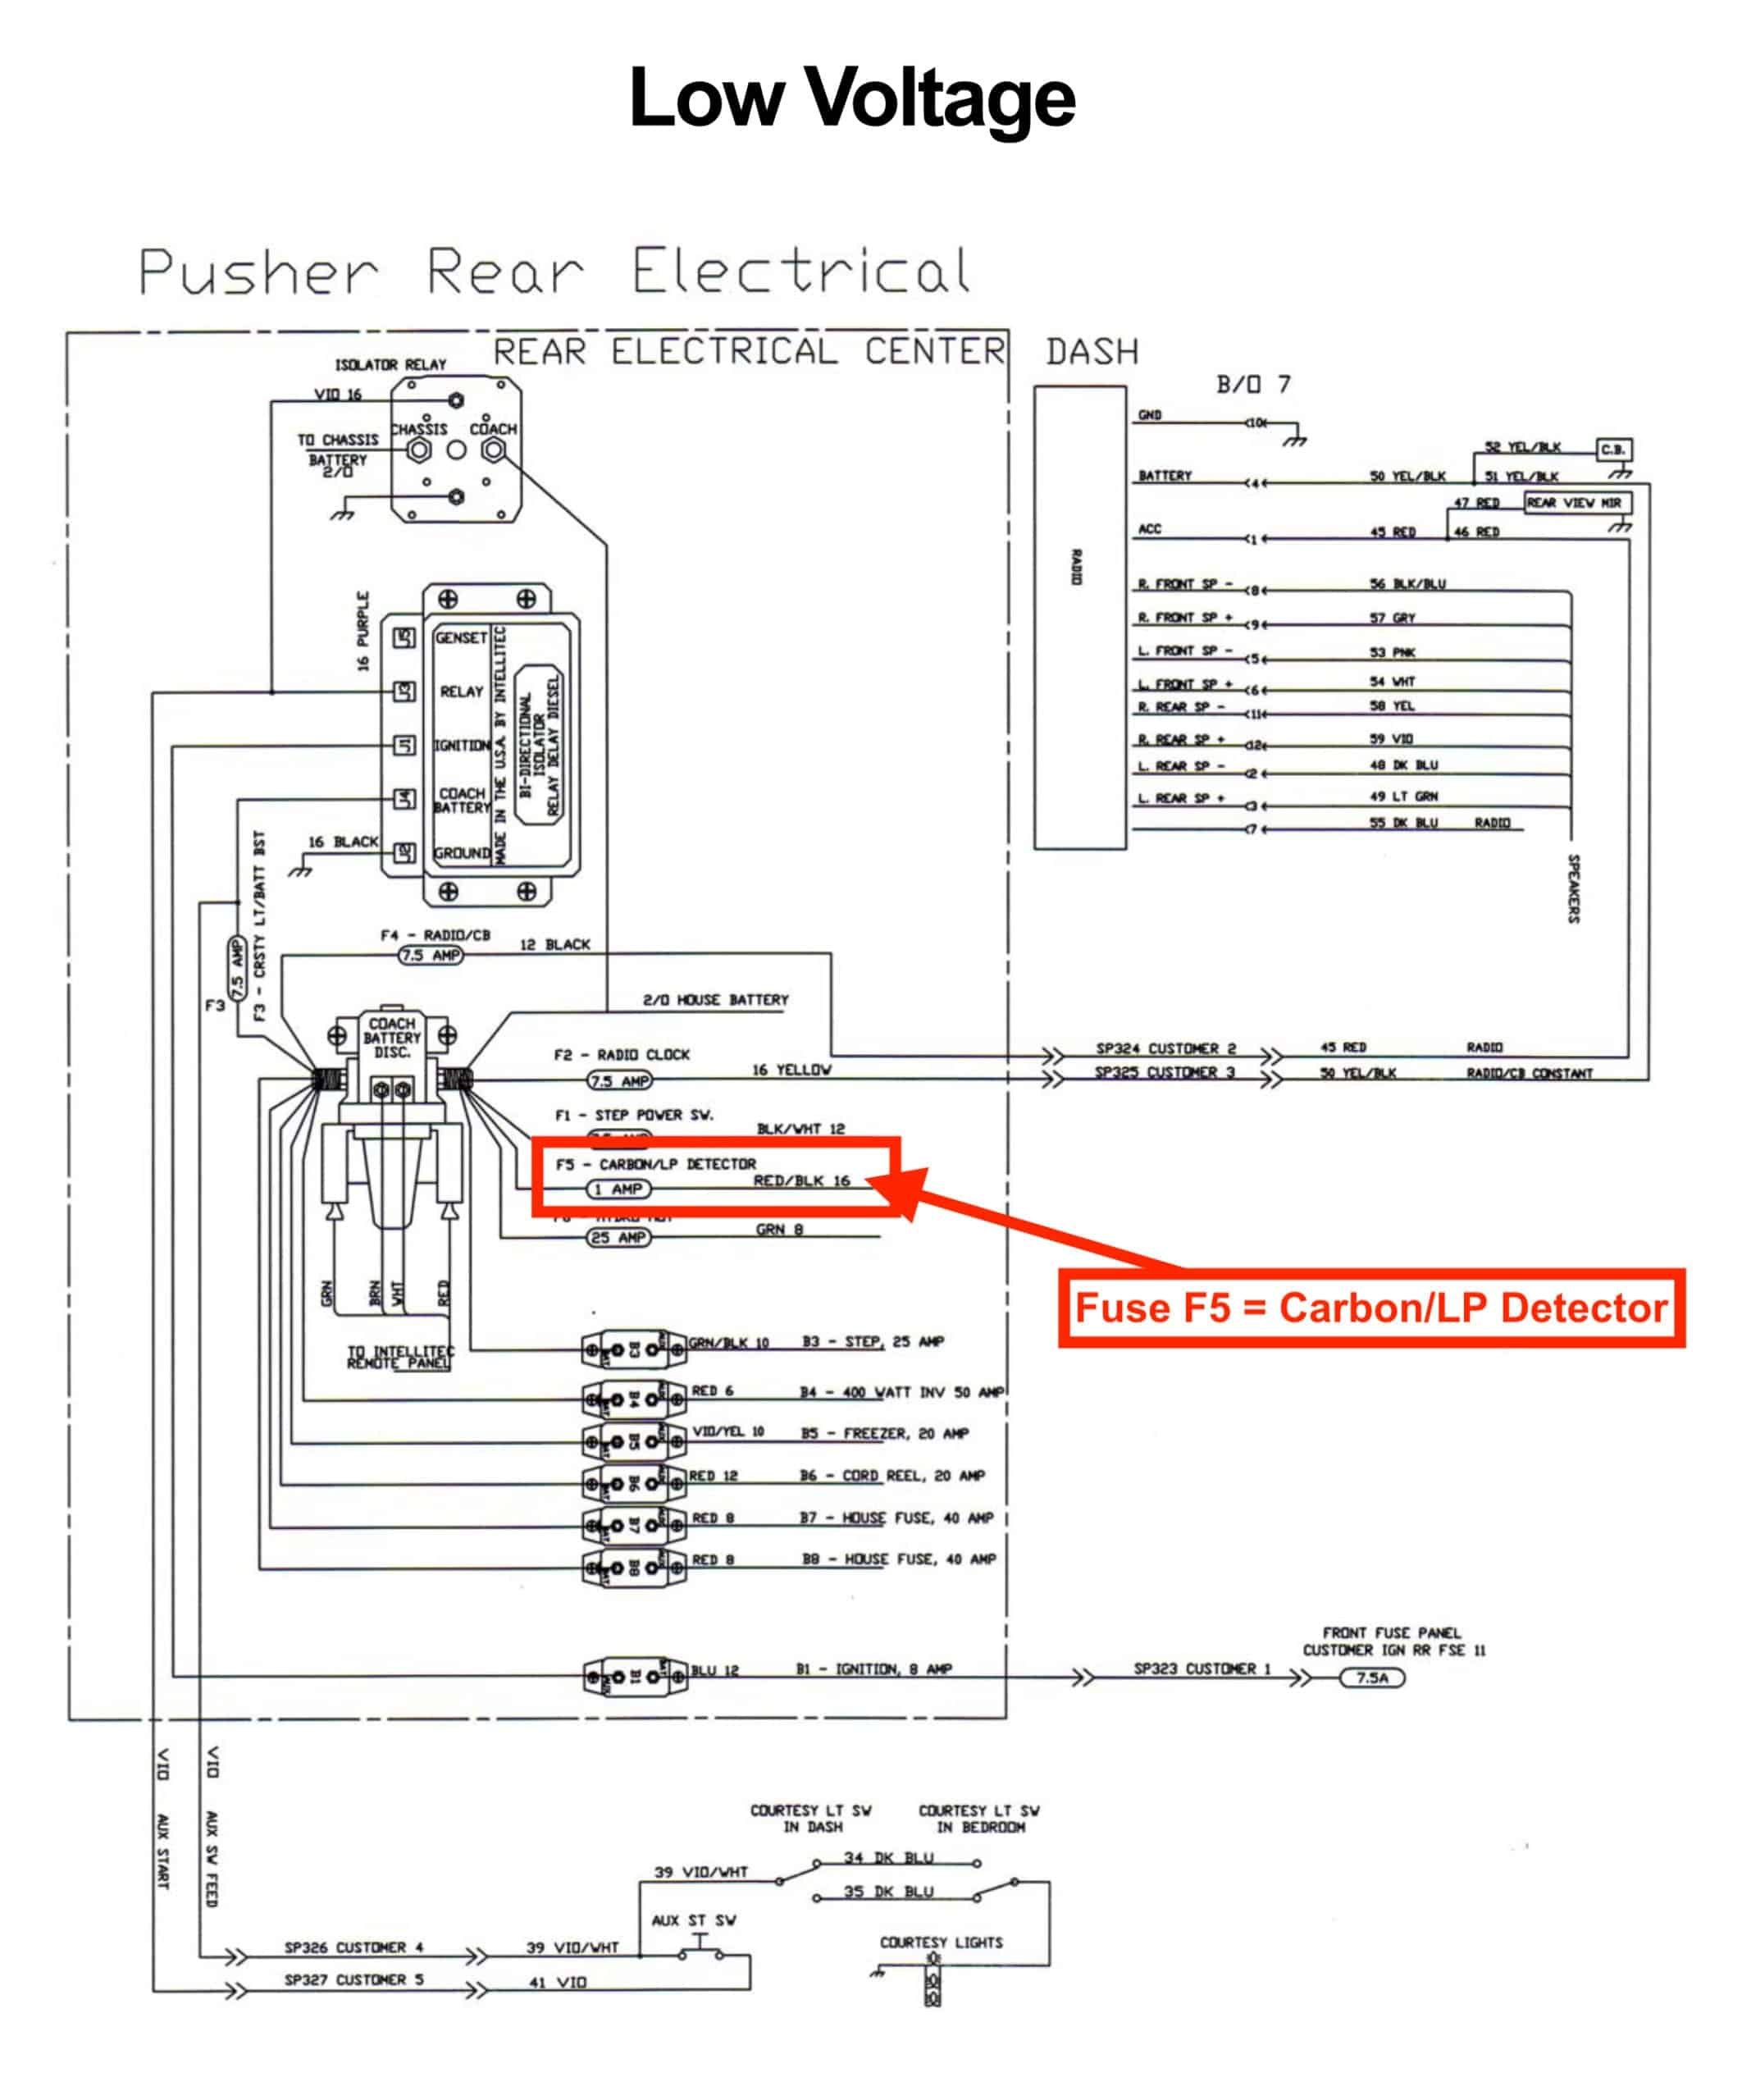 2005 Diesel Pusher Rear Electrical Schematic